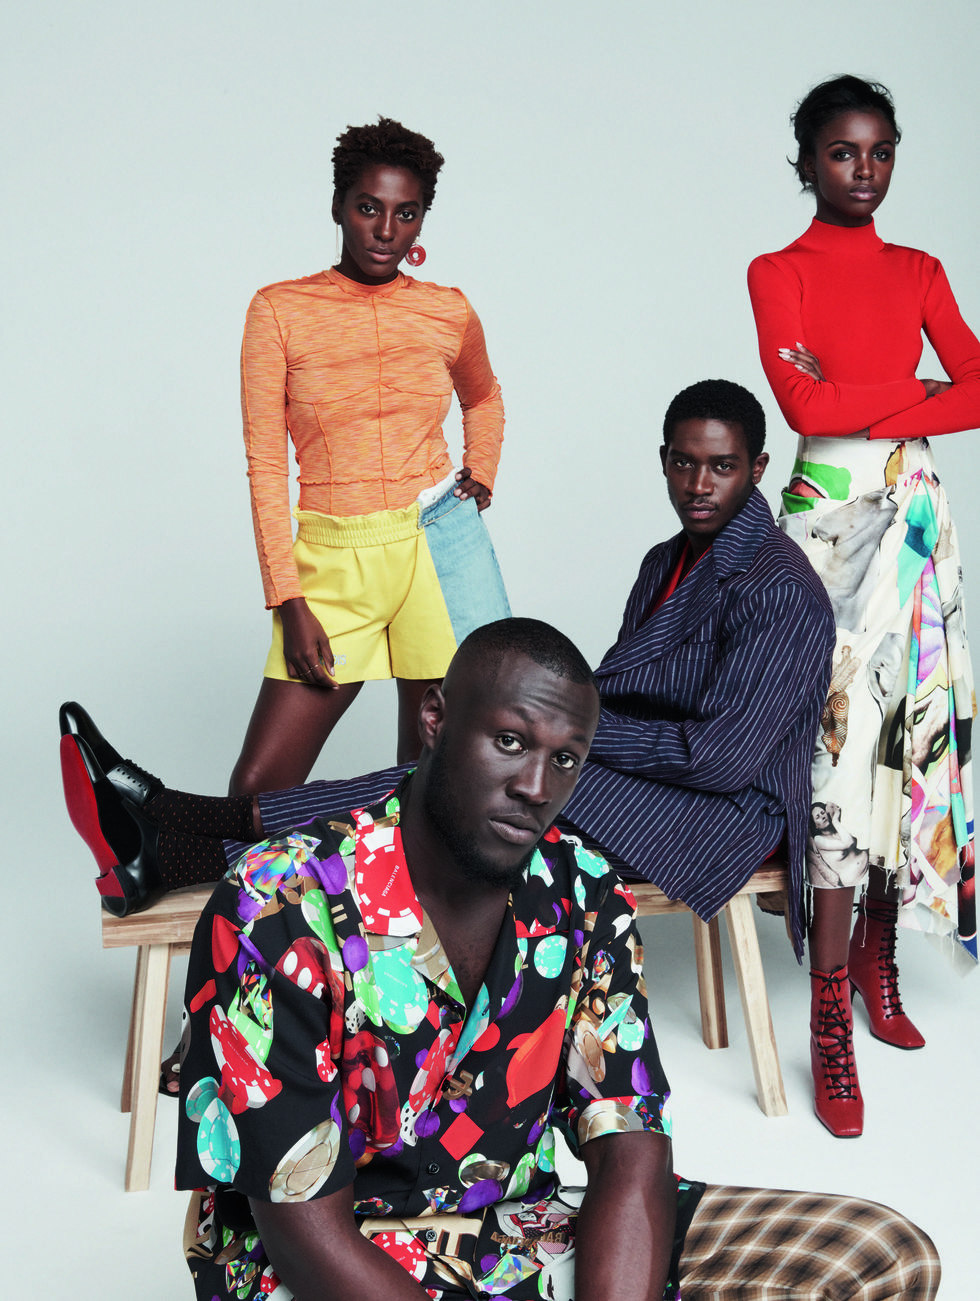 - Stormzy along with Damson Idris, poet Yrsa Daley-Ward and supermodel Leomie Anderson